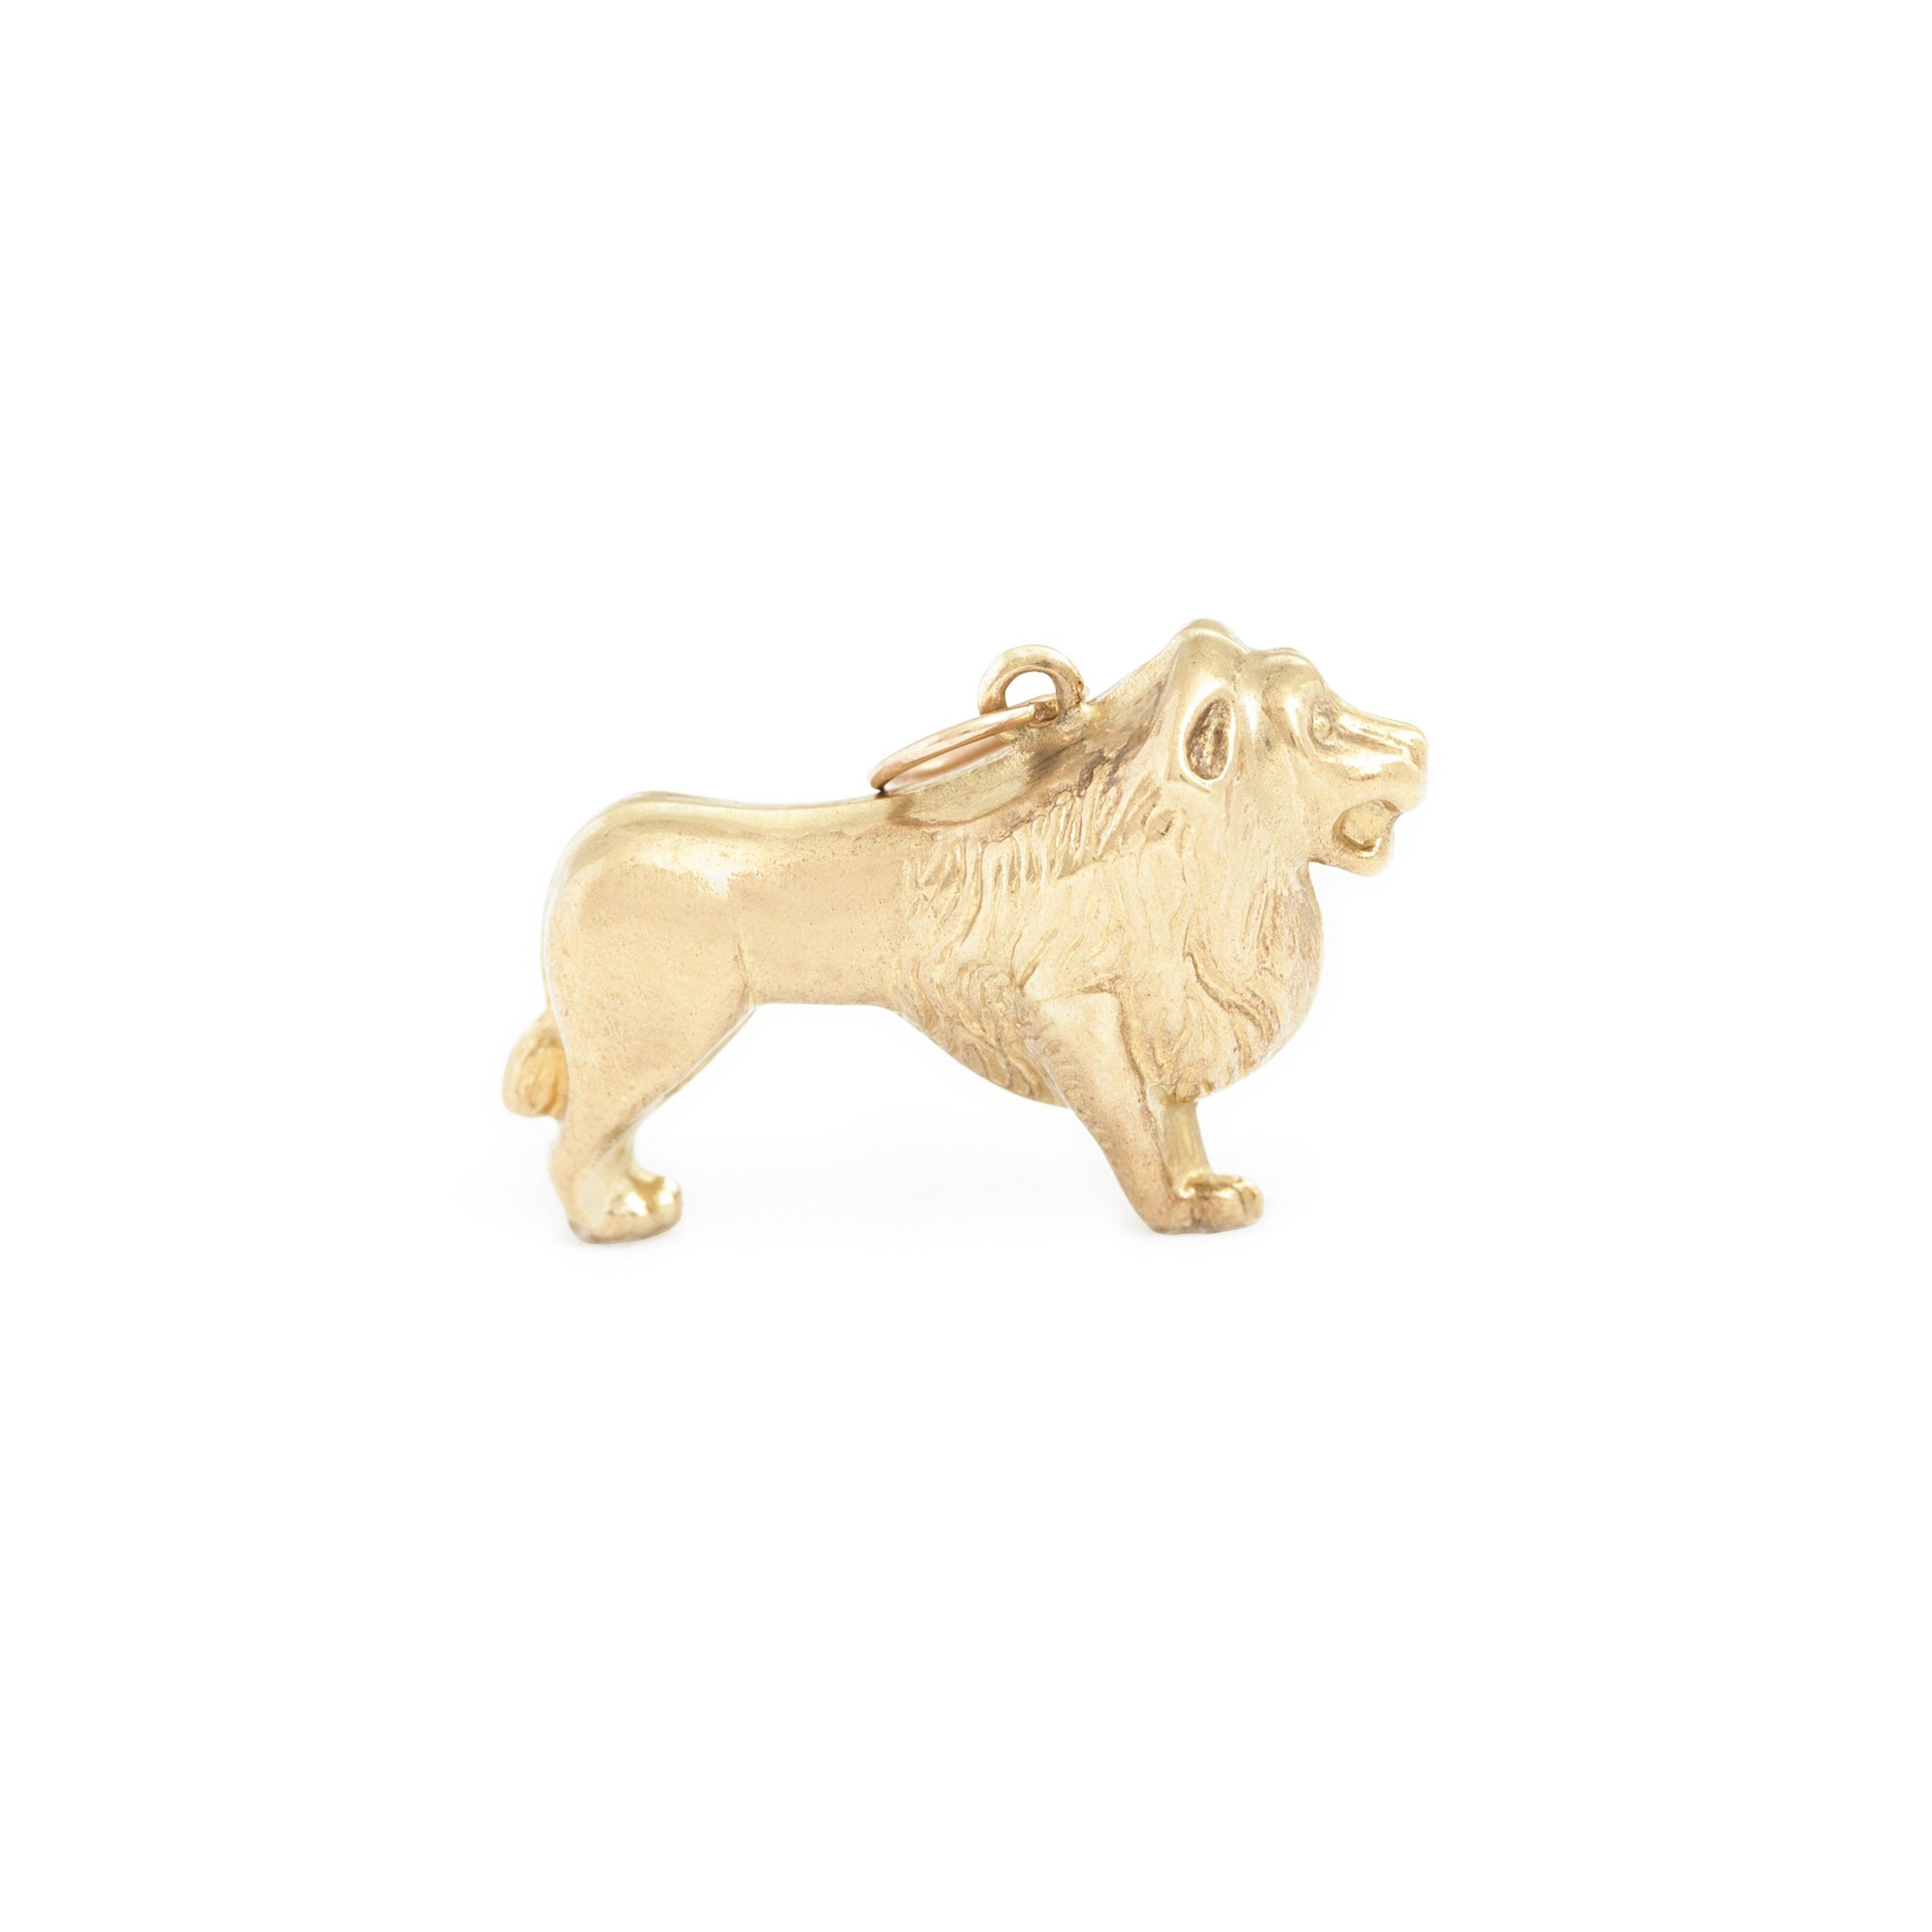 English Leo 9k Gold Lion Zodiac Charm